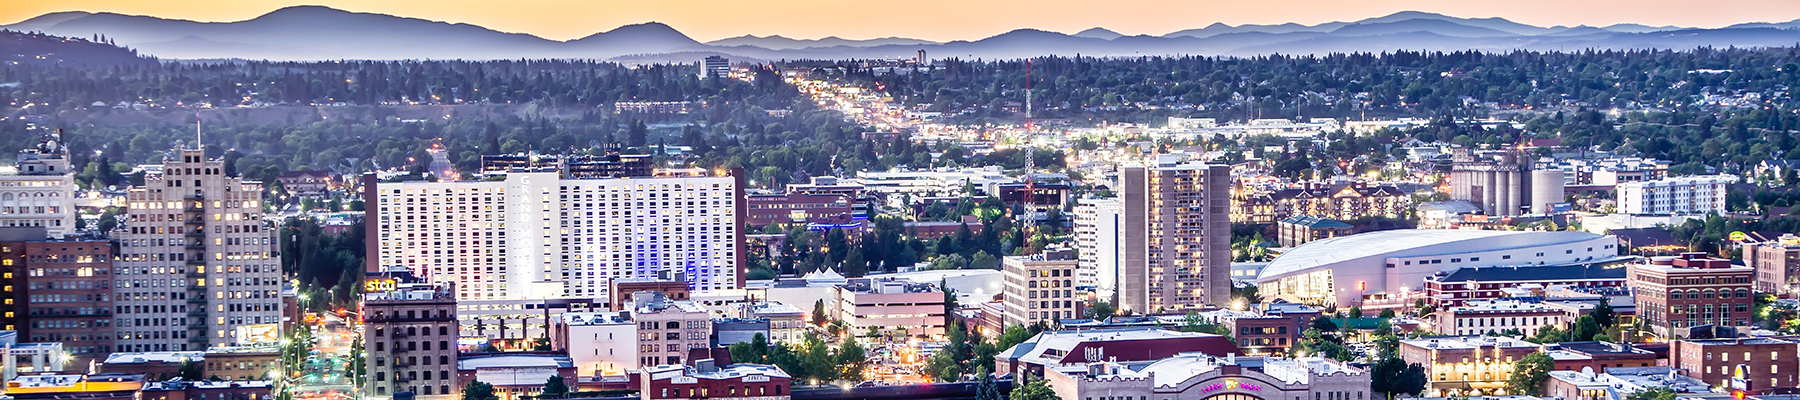 Downtown SPokane at dawn - aerial shot